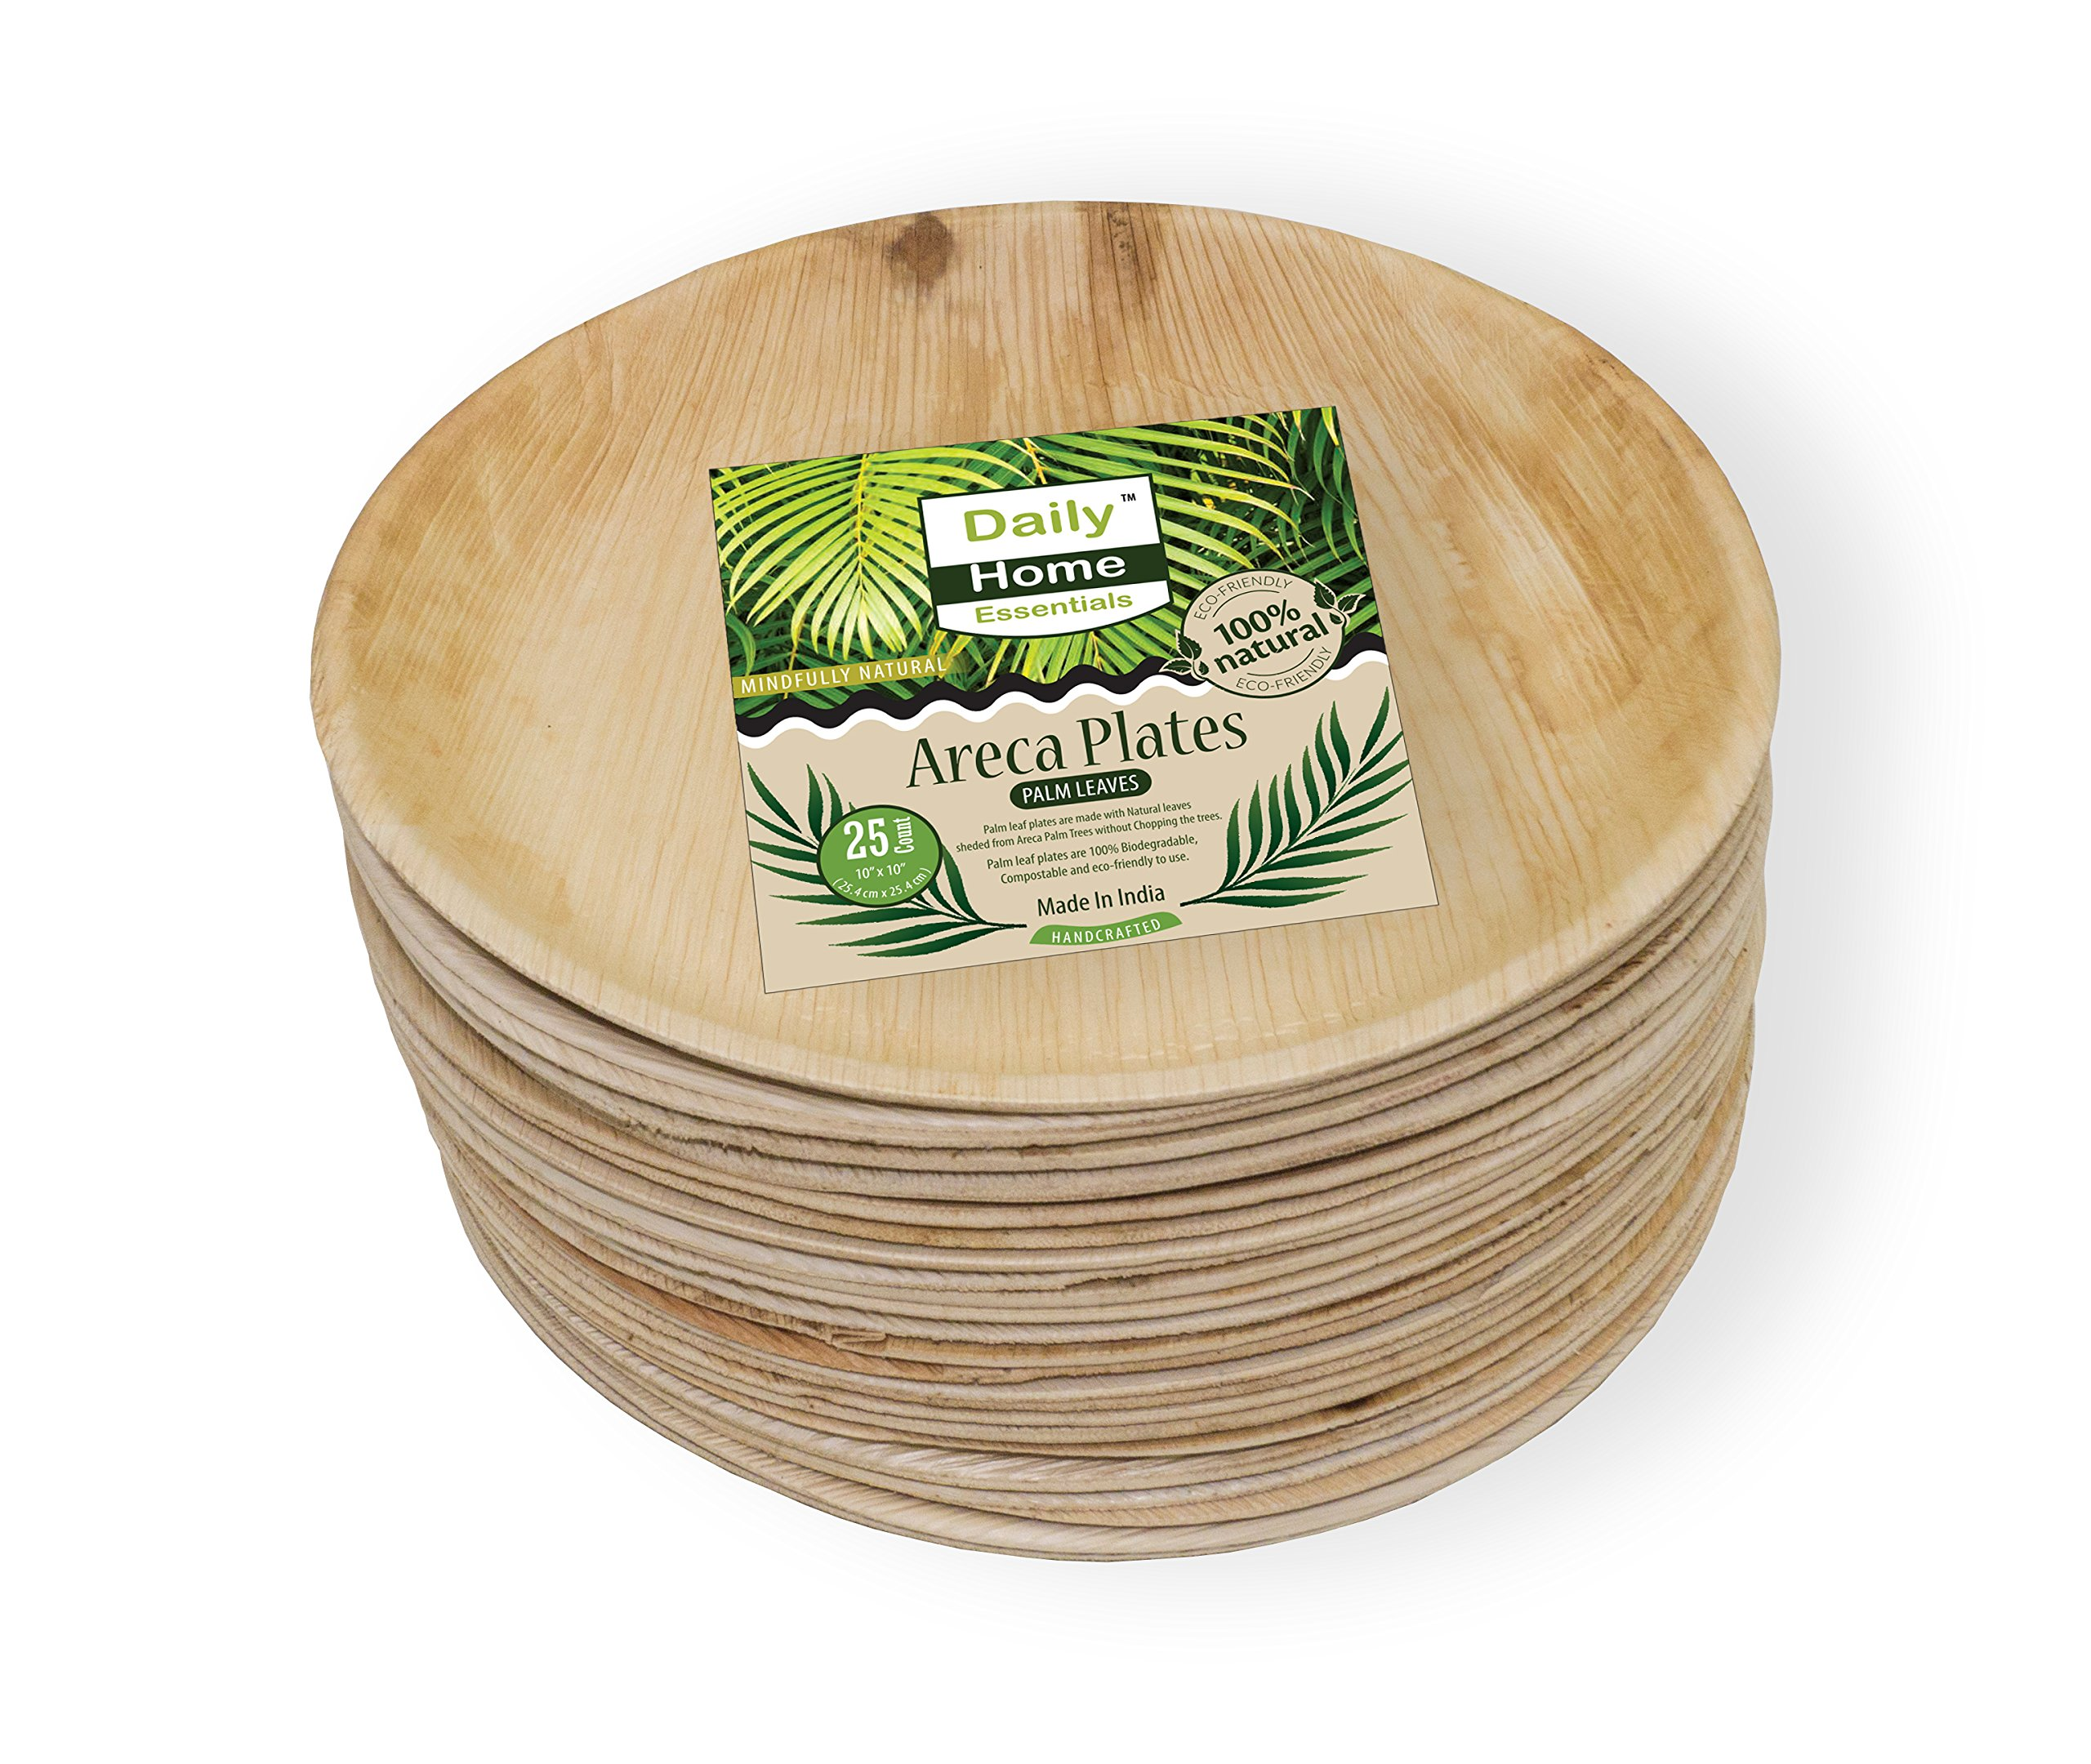 Daily Home Essentials 10'' Round Palm Leaf Plates Serves 25 | Eco Friendly Biodegradable Disposable Dinnerware For Wedding, Dinner Party, Camping, Takeout & More.